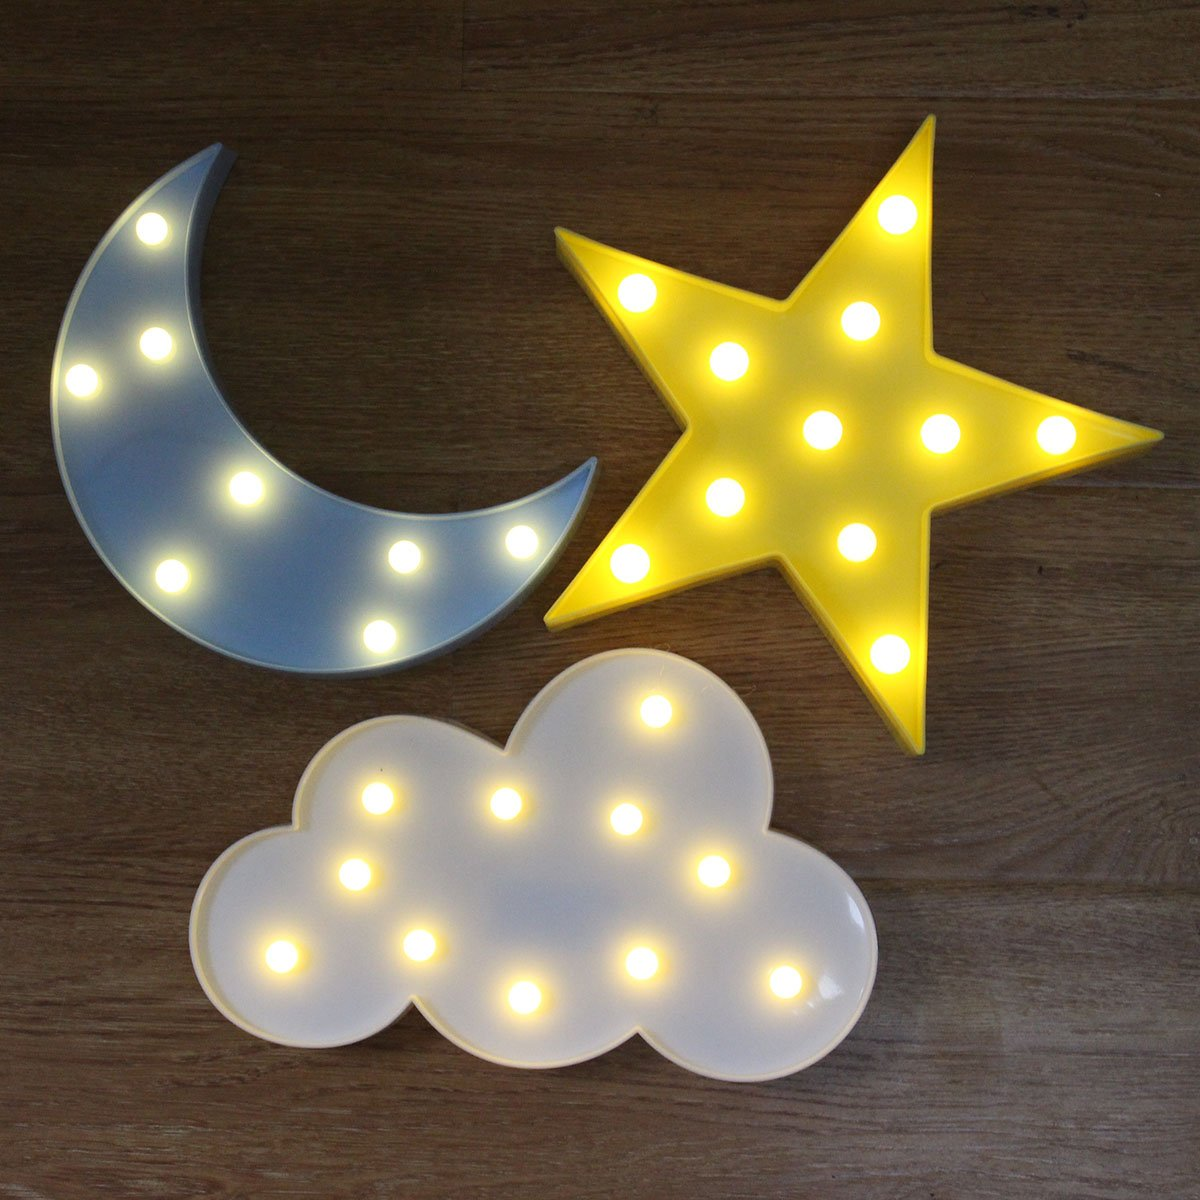 LED Night Lamp Marquee Light Table Light Wall Lamp for Home,Party Light Decoration, for Kids,Three Type Star,Moon,Cloud